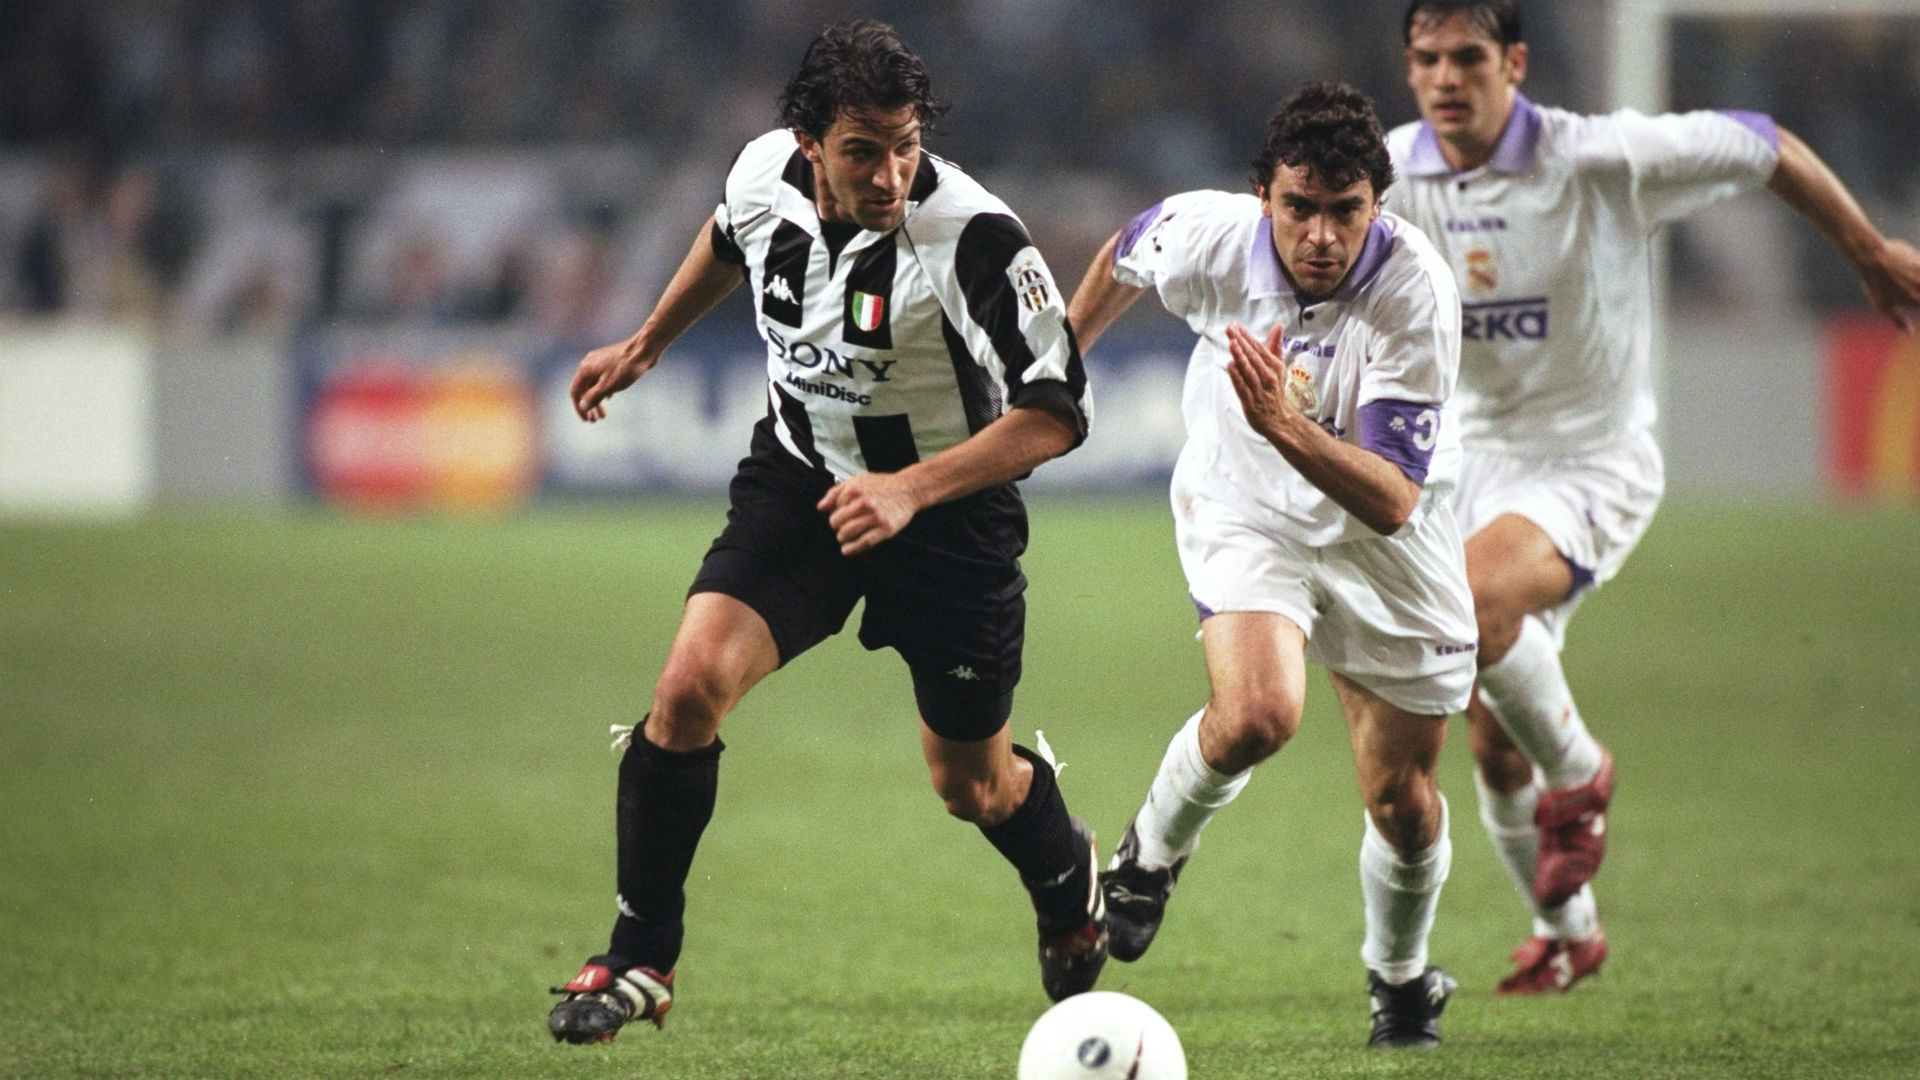 Del Piero Juventus Sanchis Real Madrid